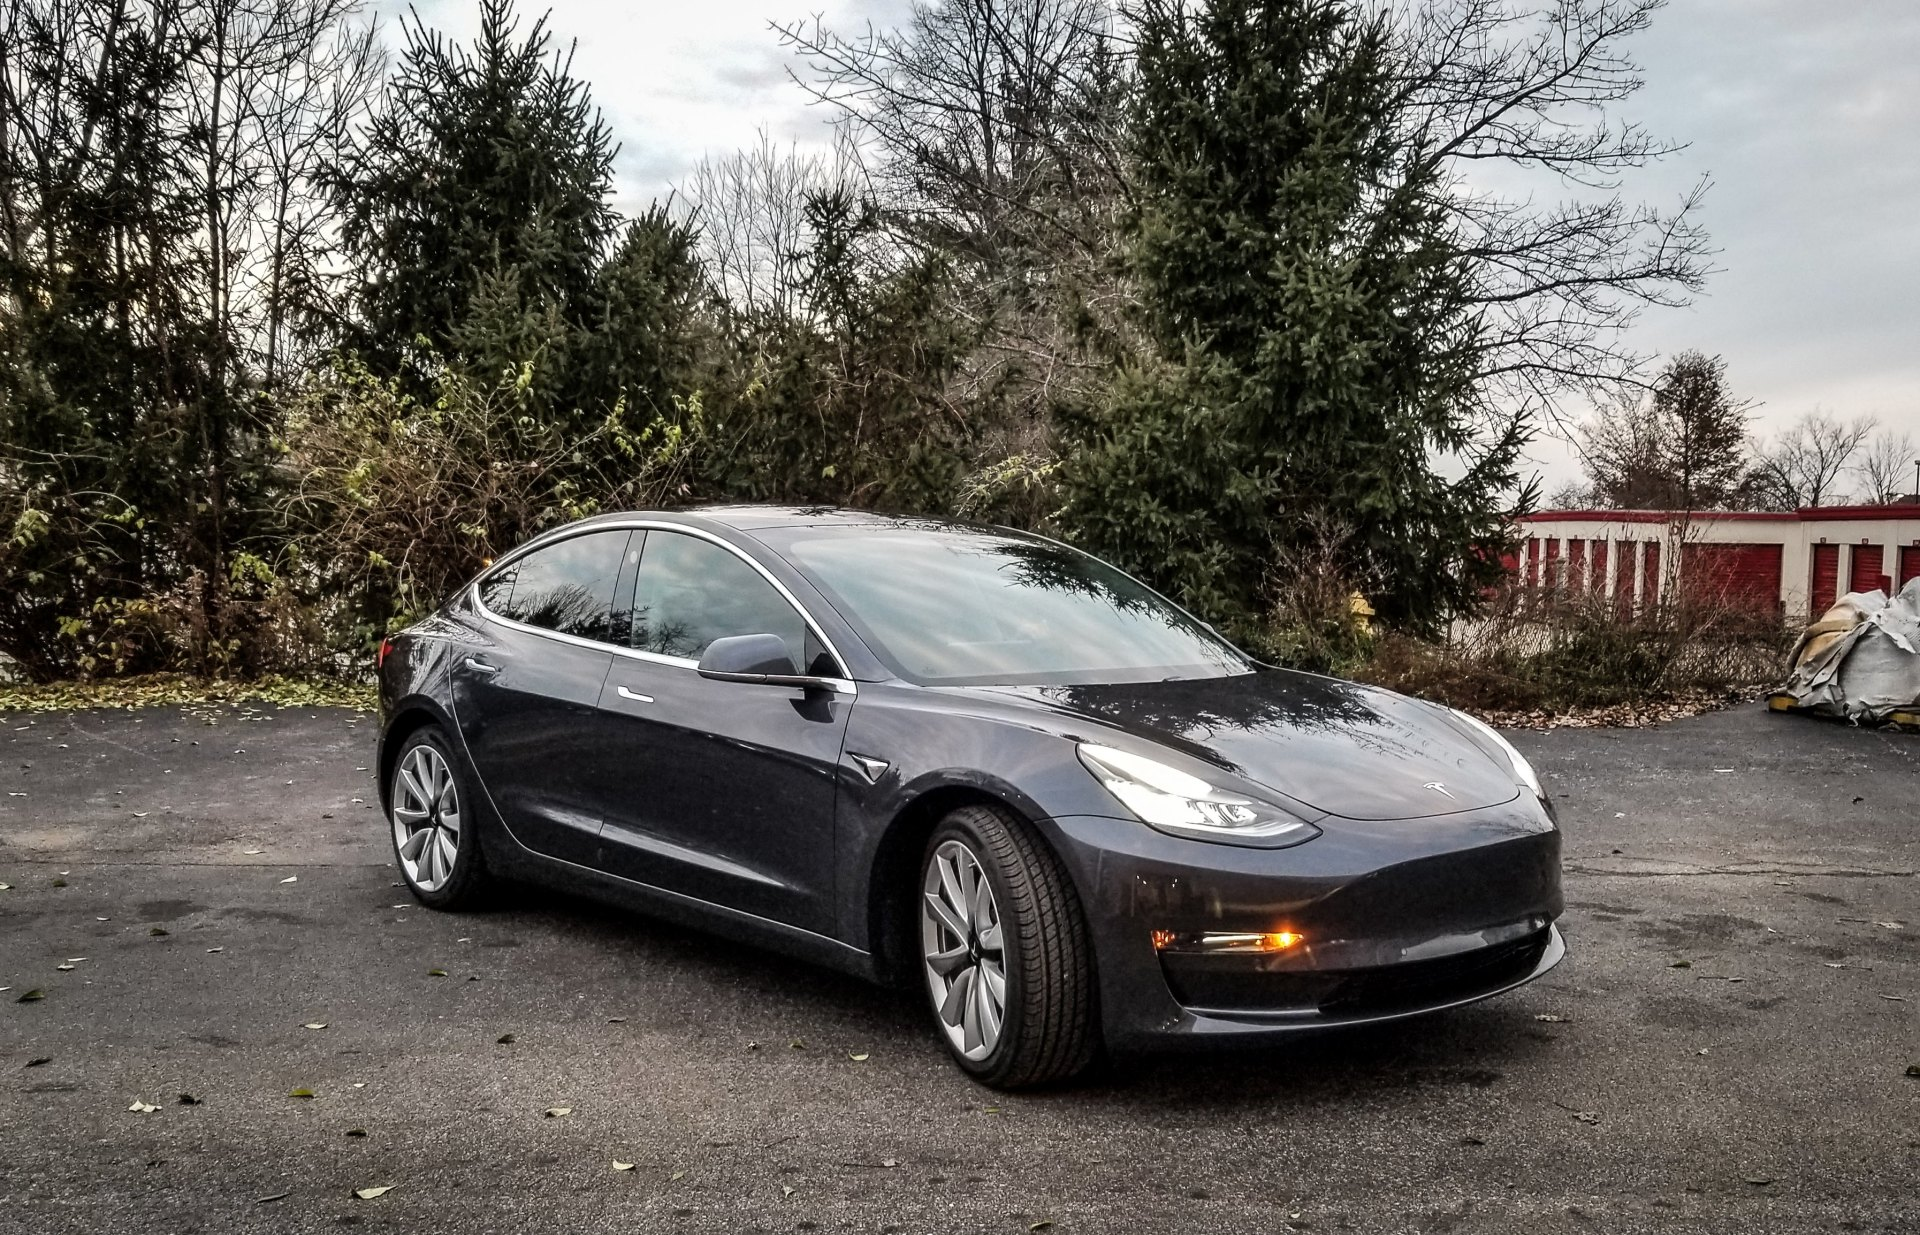 2018 Tesla Model 3 after a Stage 1 Correction, CP Gold and SunTek Carbon tint.